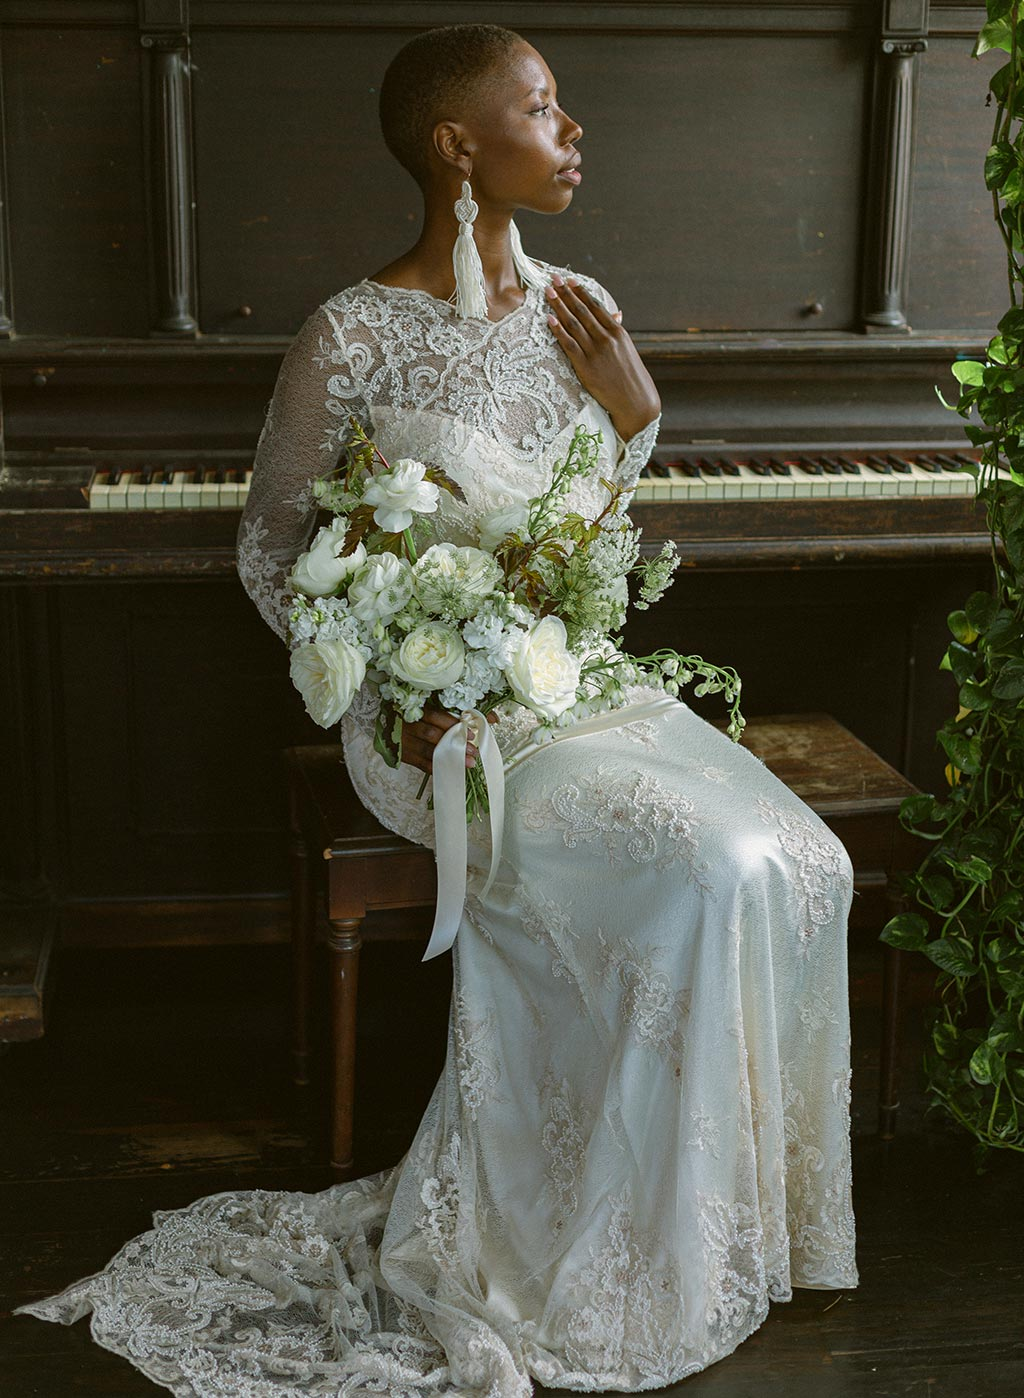 Wedding Dress Model Bride Floral Bouquet